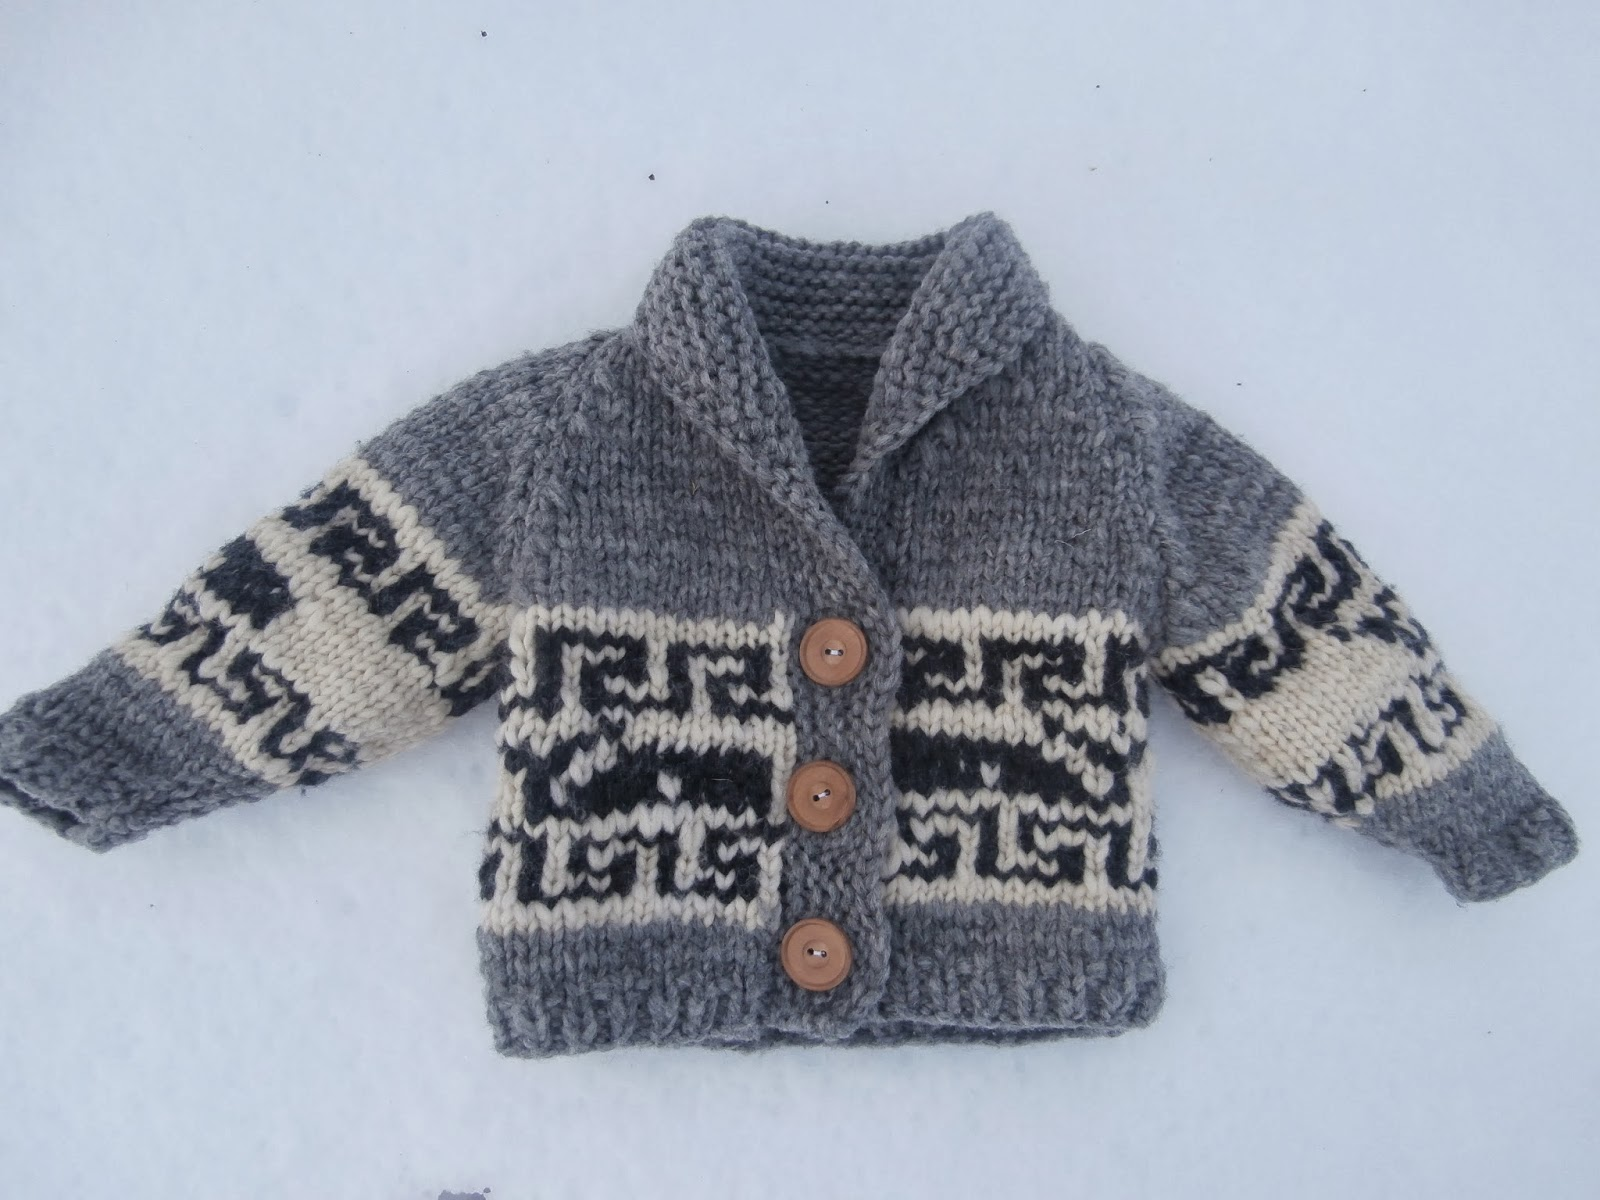 Cowichan Sweater Knitting Patterns - Sweater Jeans And Boots